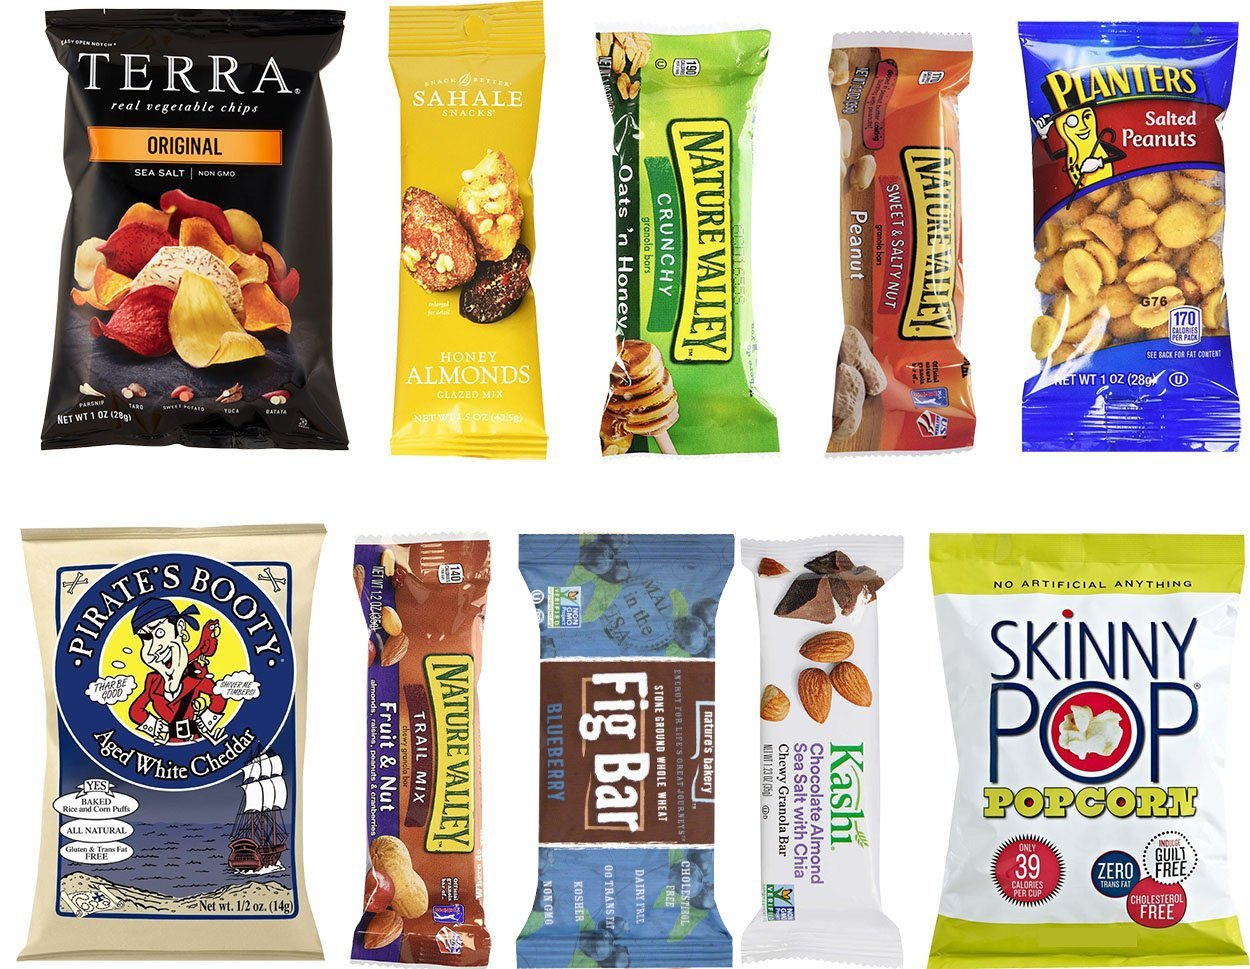 Healthy Snacks Care Package Sampler Gift Box - 10 Pack Variety - Nature Valley Granola Bars, SkinnyPop, Fig Bar, Planters, Terra Chips, Kashi, Sahale, Aged Cheddar and more by Blue Ribbon